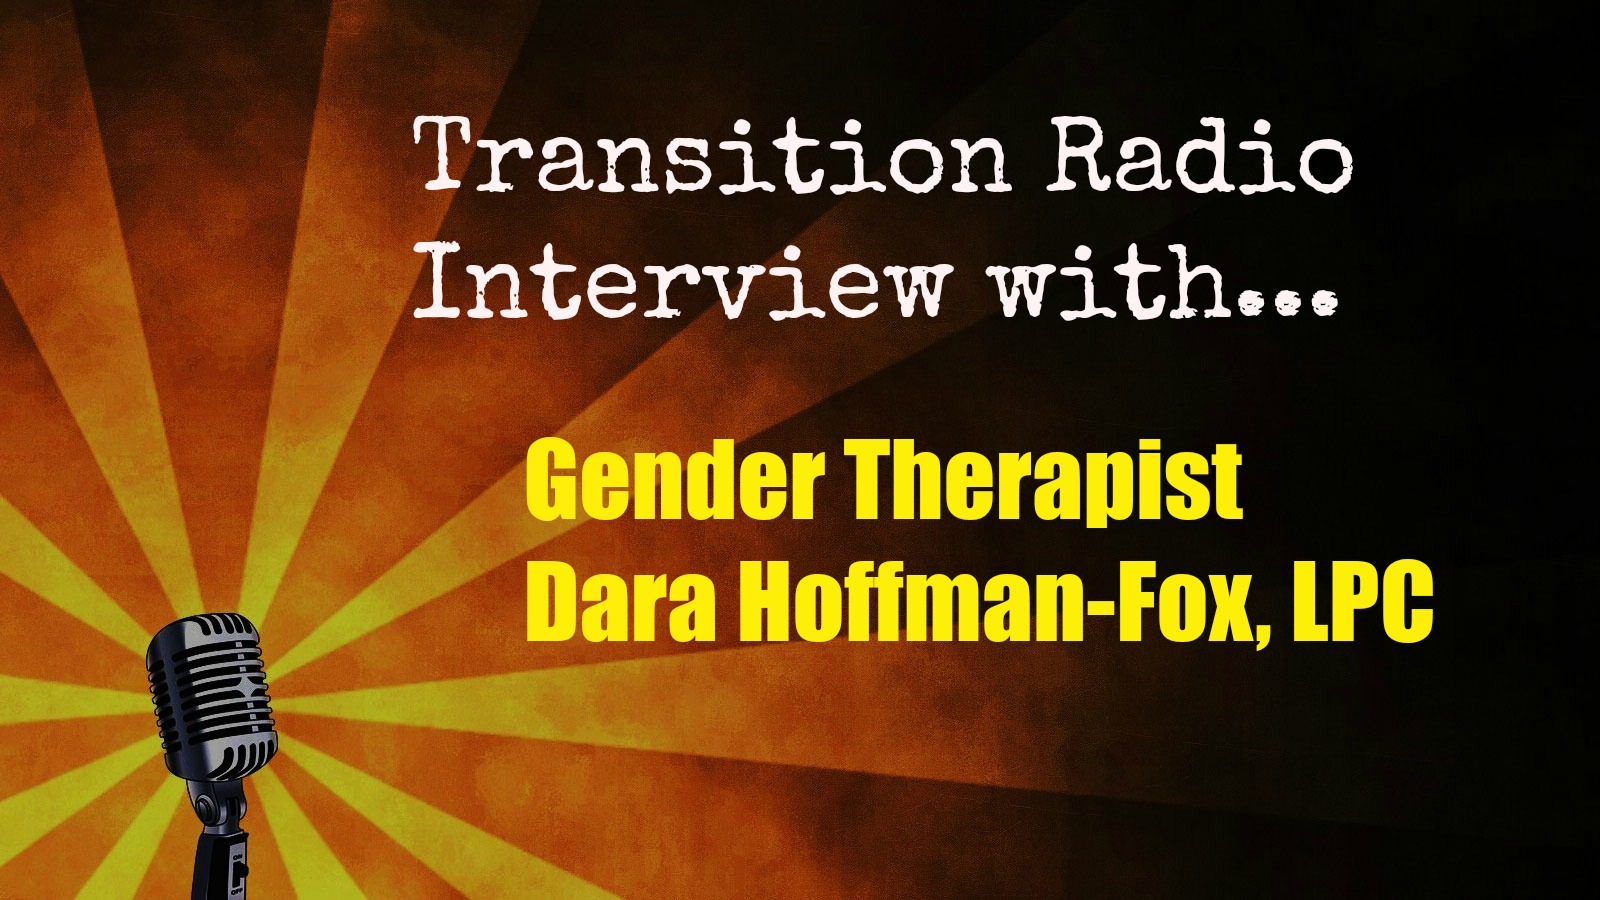 TransitionRadio